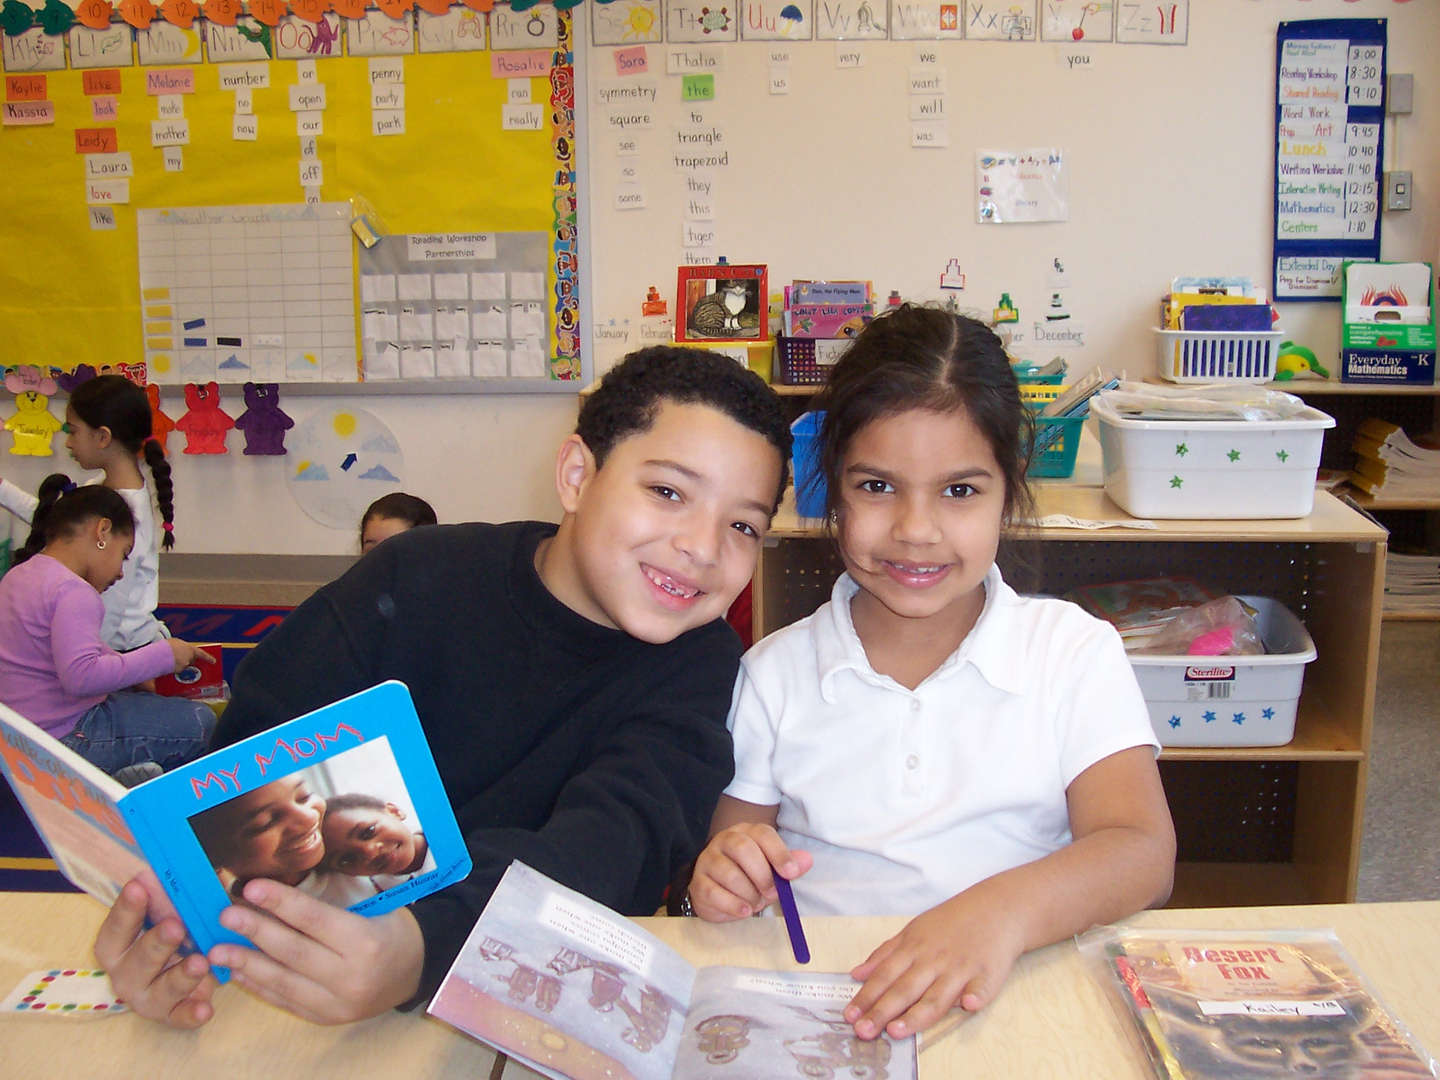 Book buddies reading together